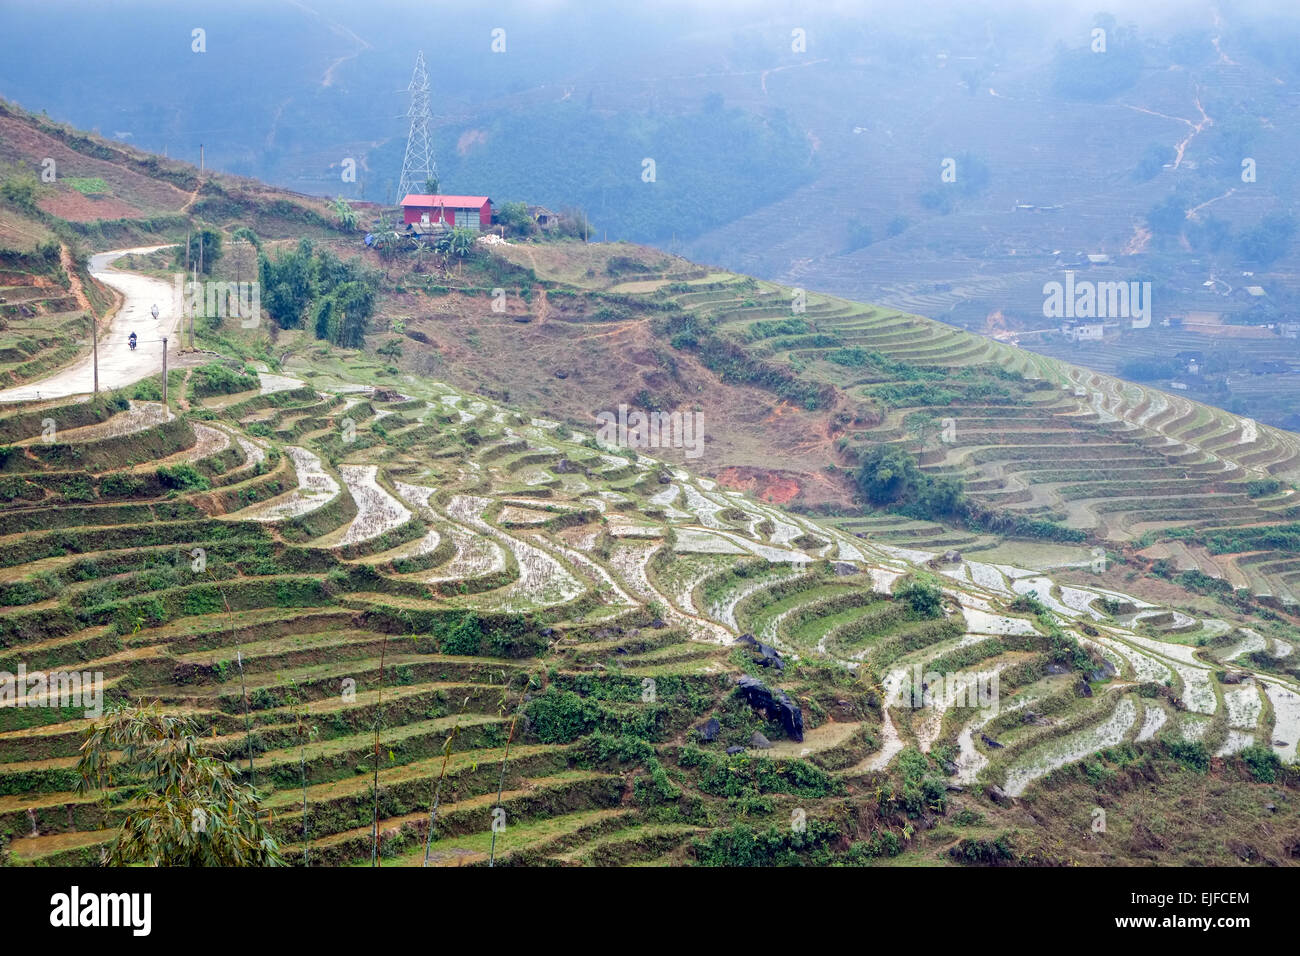 Rice terraces on a foggy day outside Sapa in the Lao Cai province of Vietnam. - Stock Image